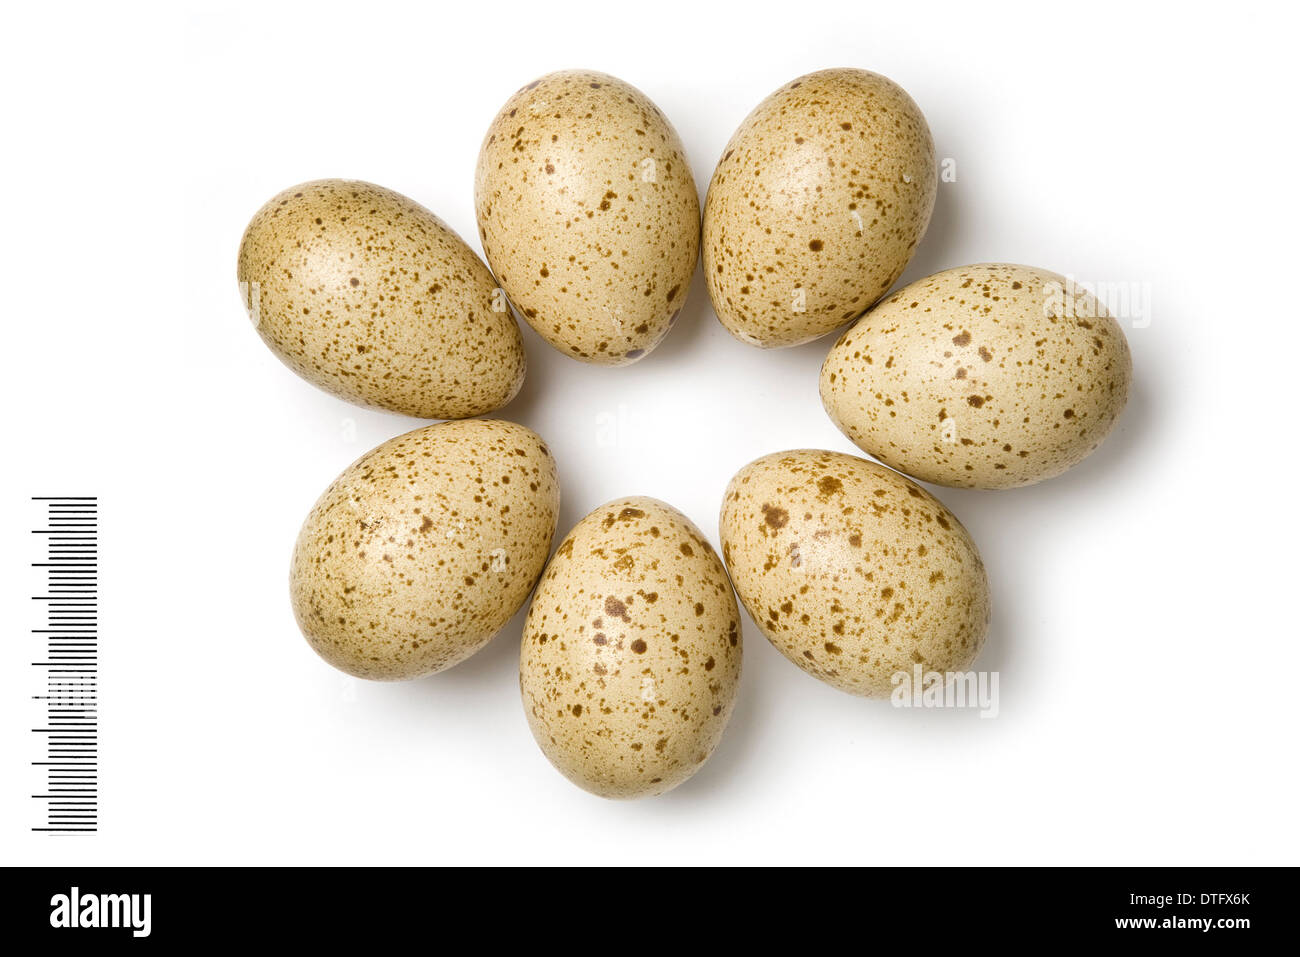 Lyrurus mlokosiewiczi, caucasian black grouse eggs - Stock Image